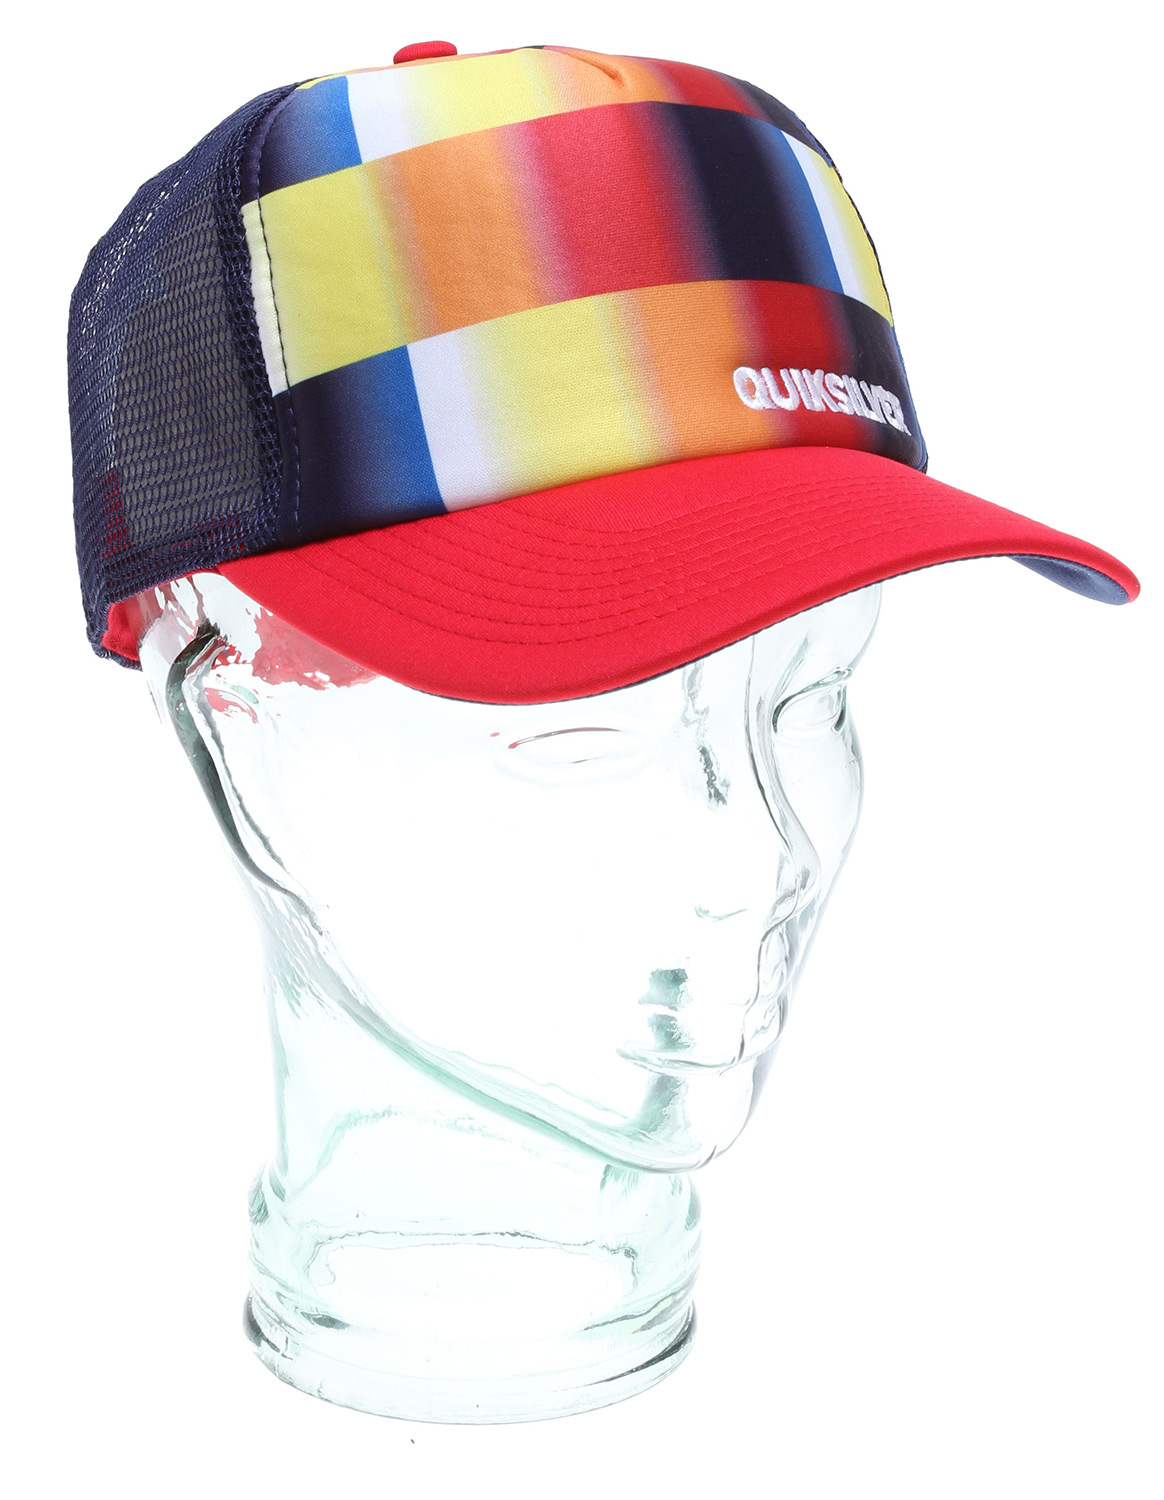 Surf Key Features of the Quiksilver Boards Cap: 50% Polyester, 50% nylon Foam front trucker hat with assorted sublimated prints - $13.95